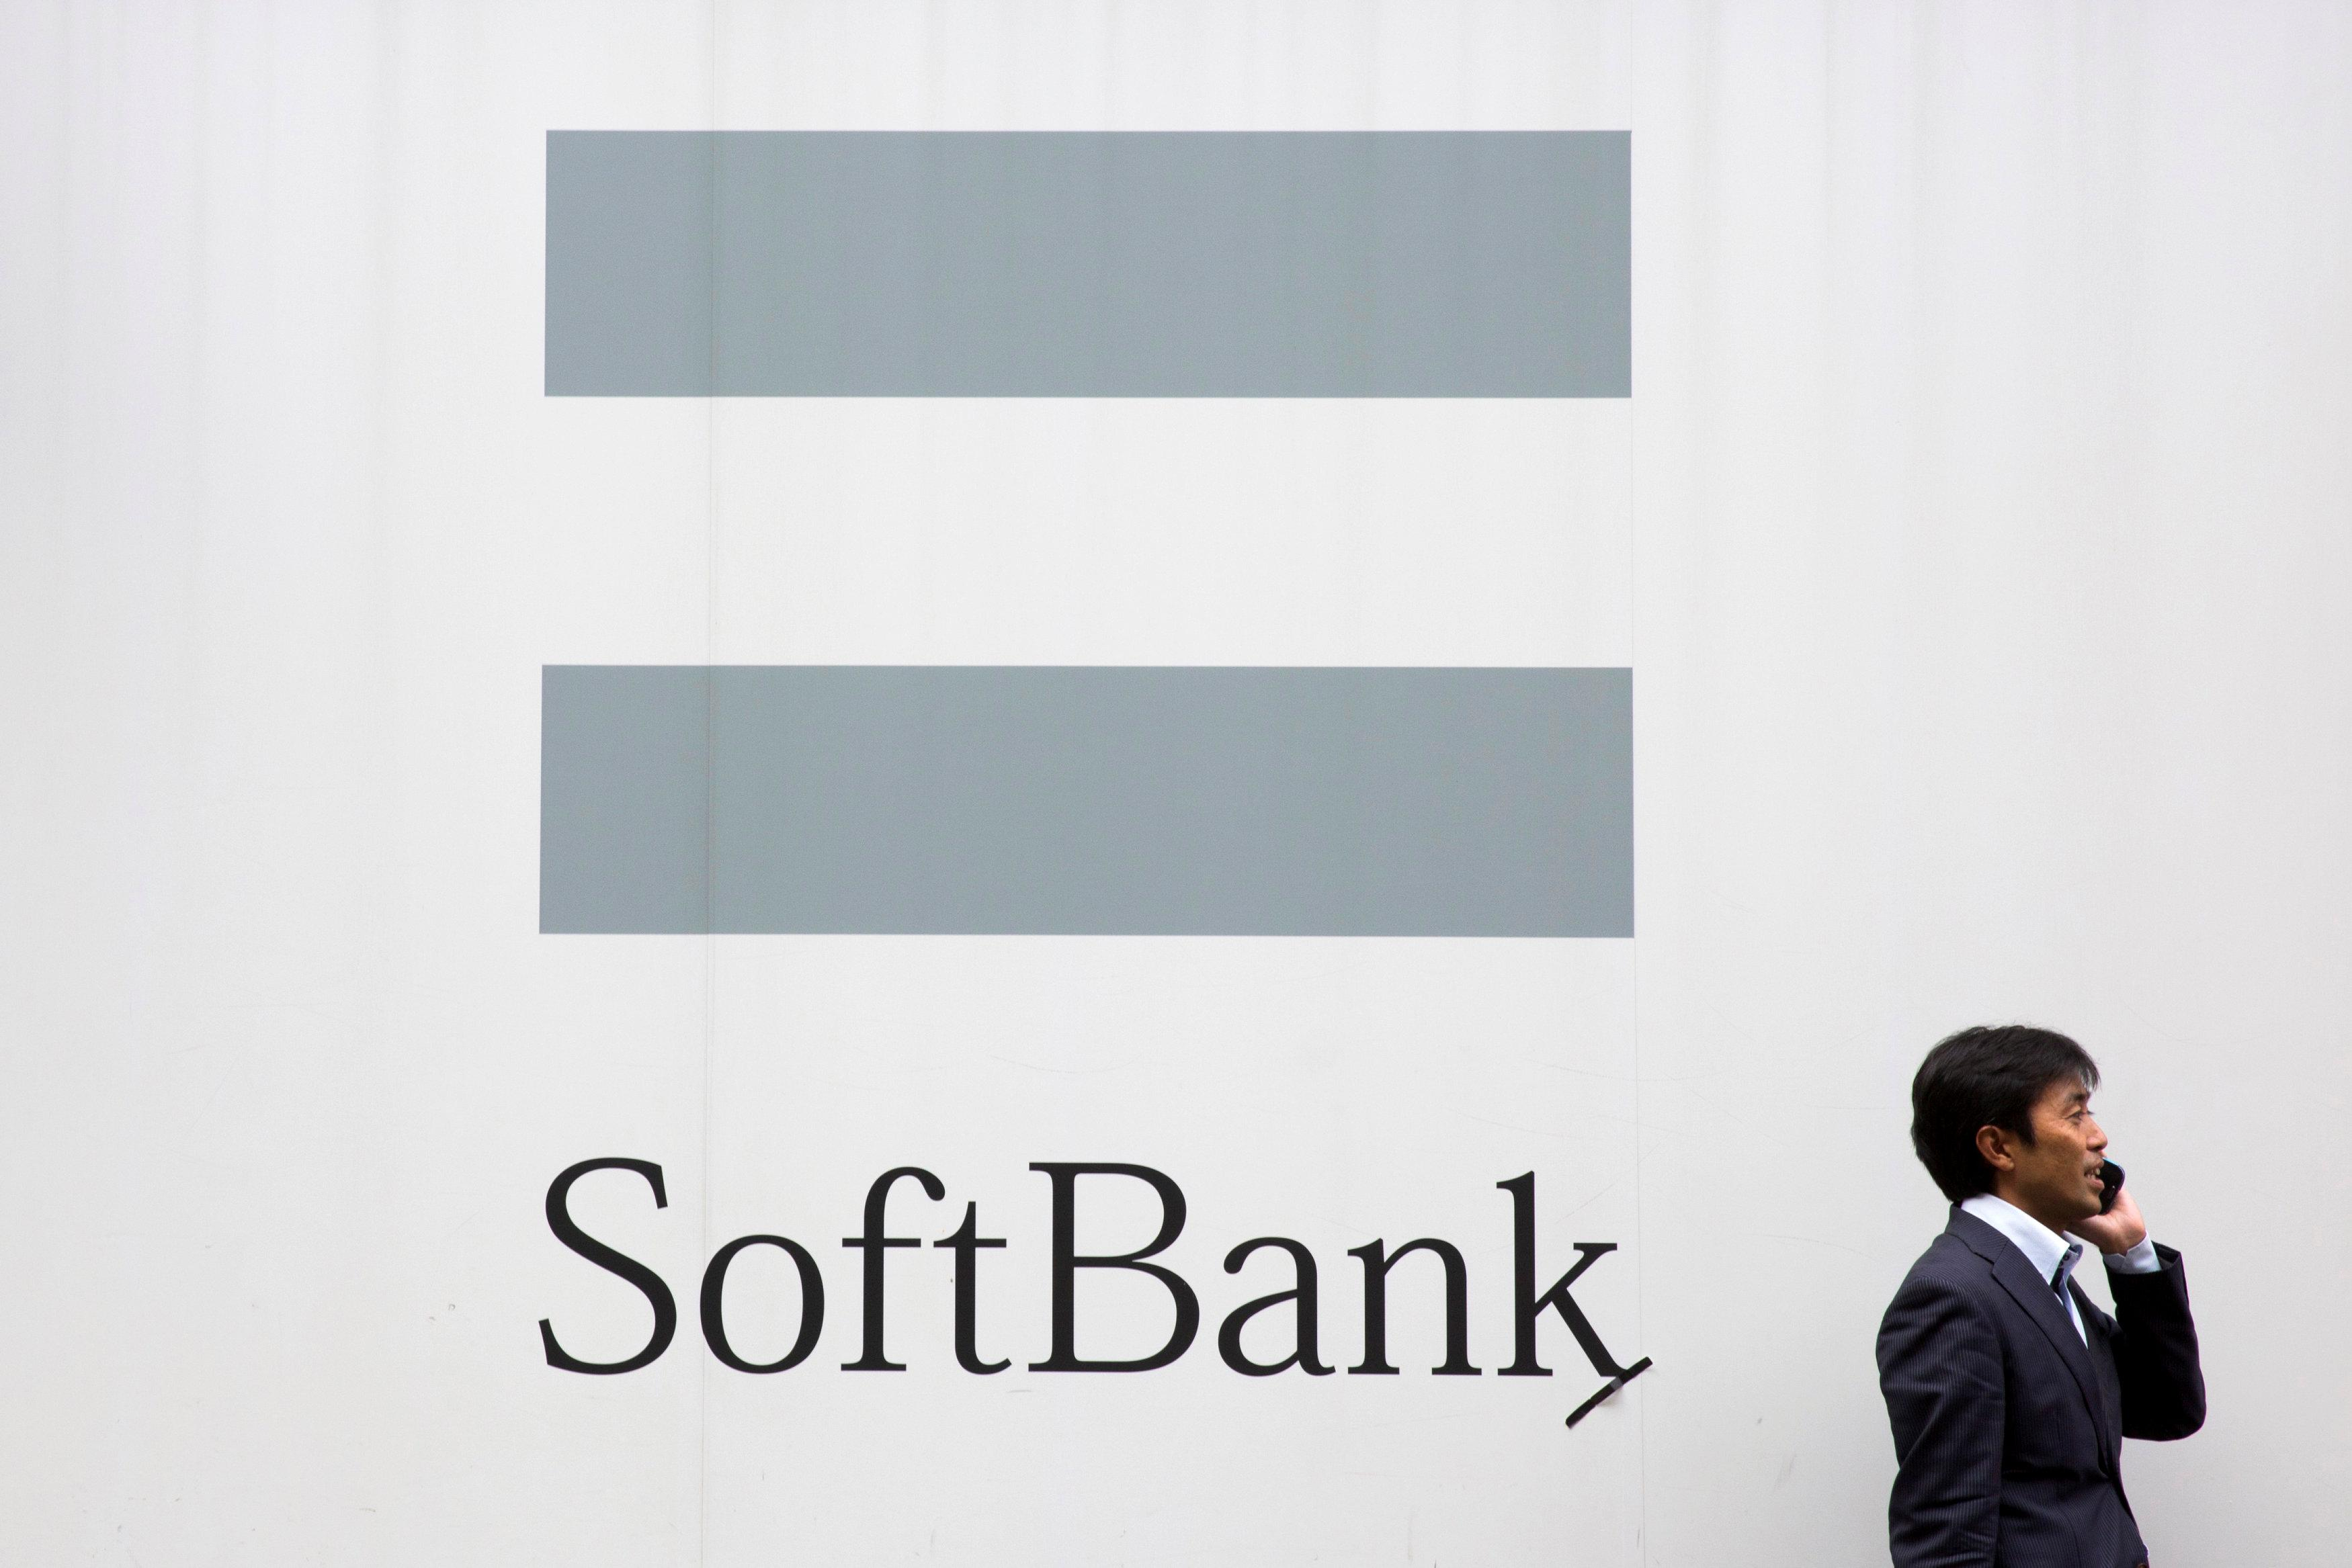 FILE PHOTO : A man talks on the phone as he stand in front of an advertising poster of the SoftBank telecommunications company in Tokyo October 16, 2015. Thomas Peter